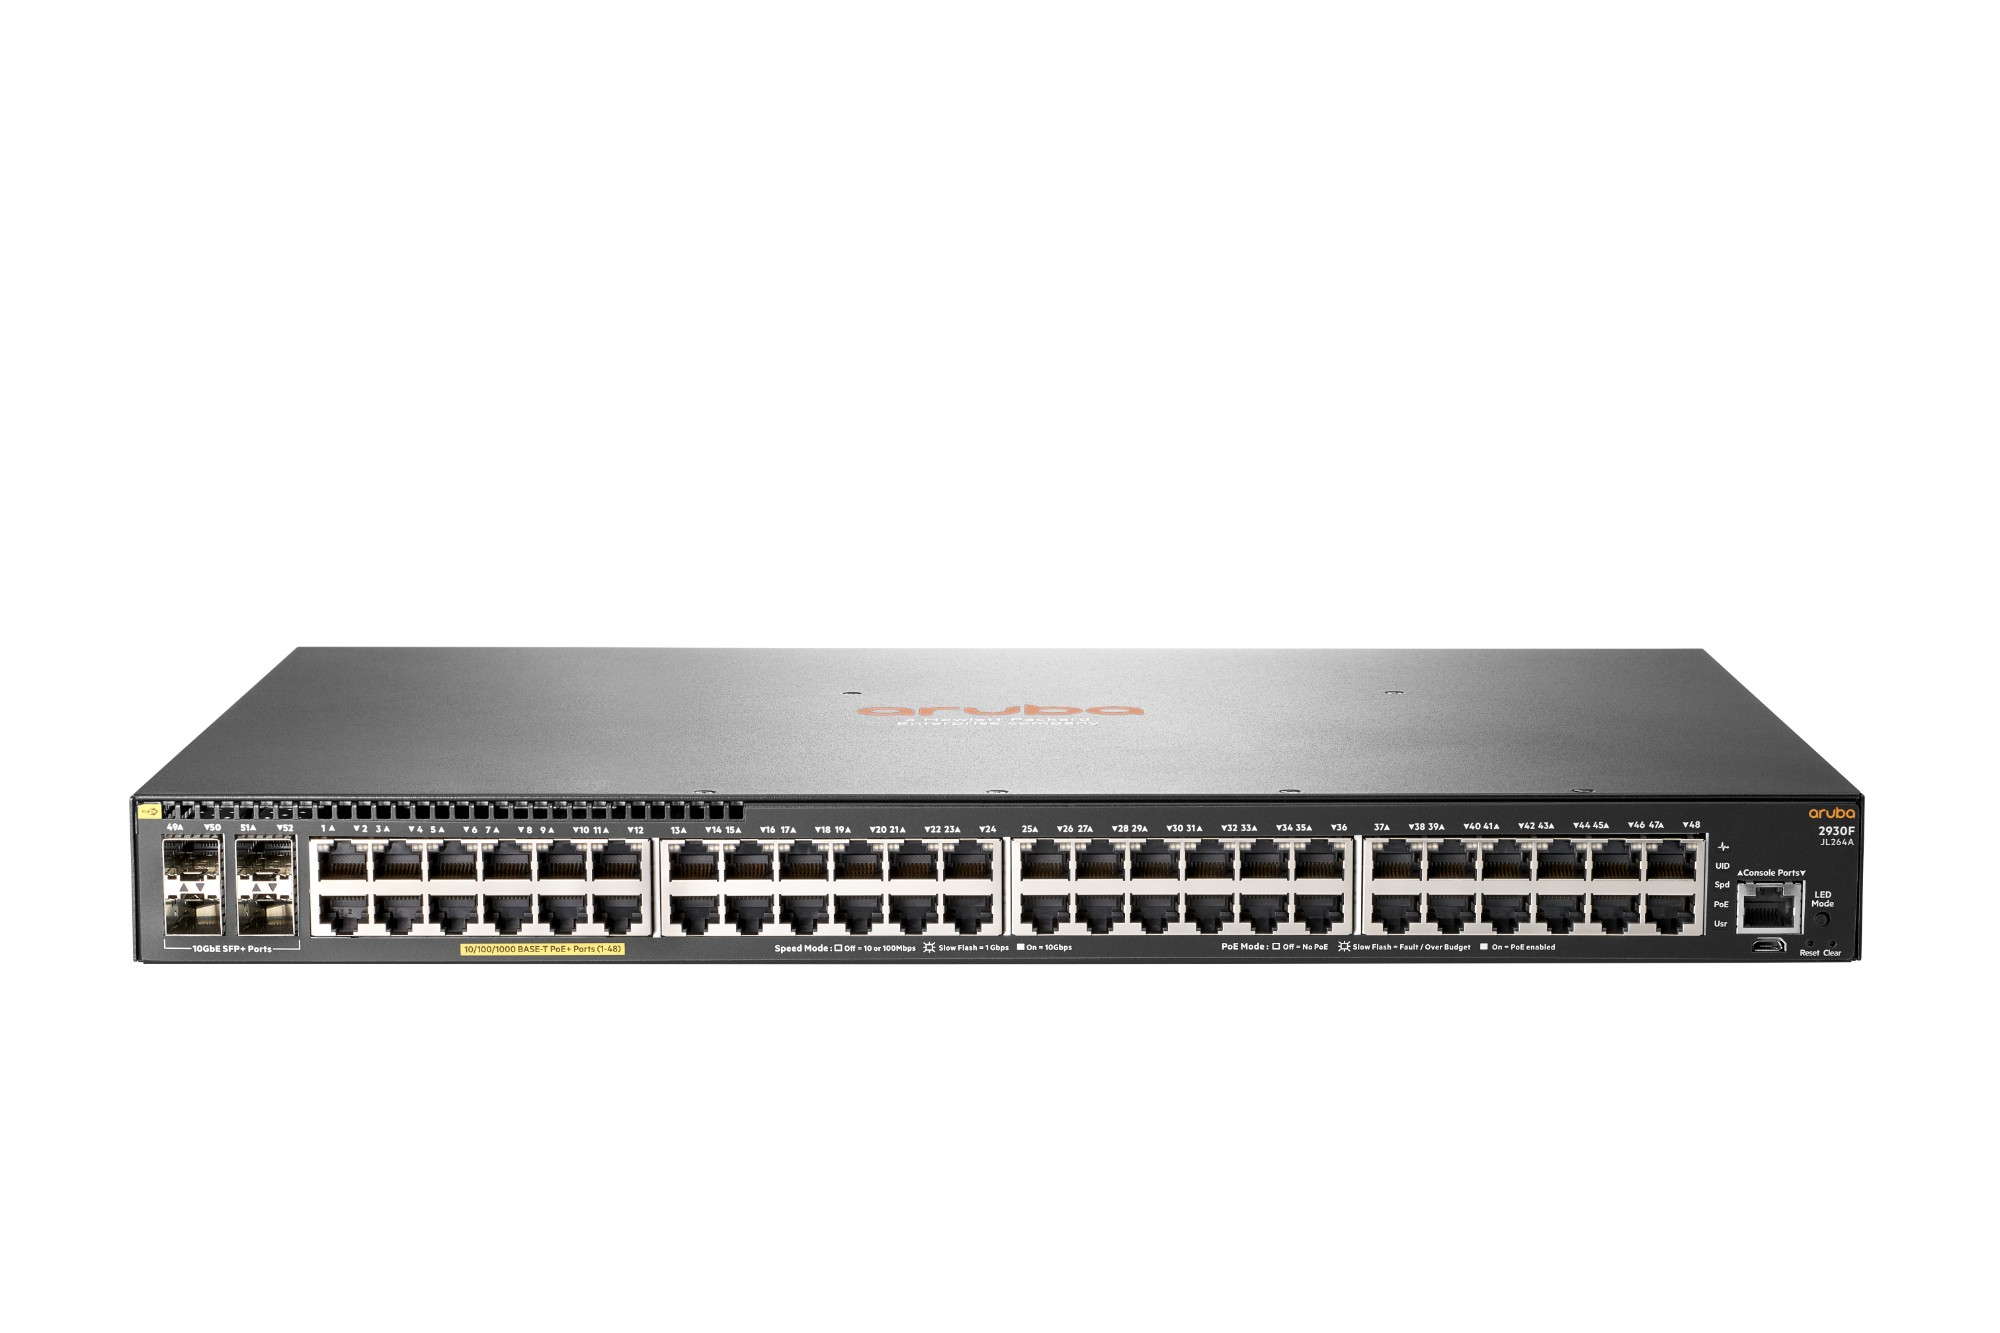 Hewlett Packard Enterprise Aruba 2930F 48G PoE+ 4SFP+ TAA Managed network switch L3 Gigabit Ethernet (10/100/1000) Power over Ethernet (PoE) 1U Grey